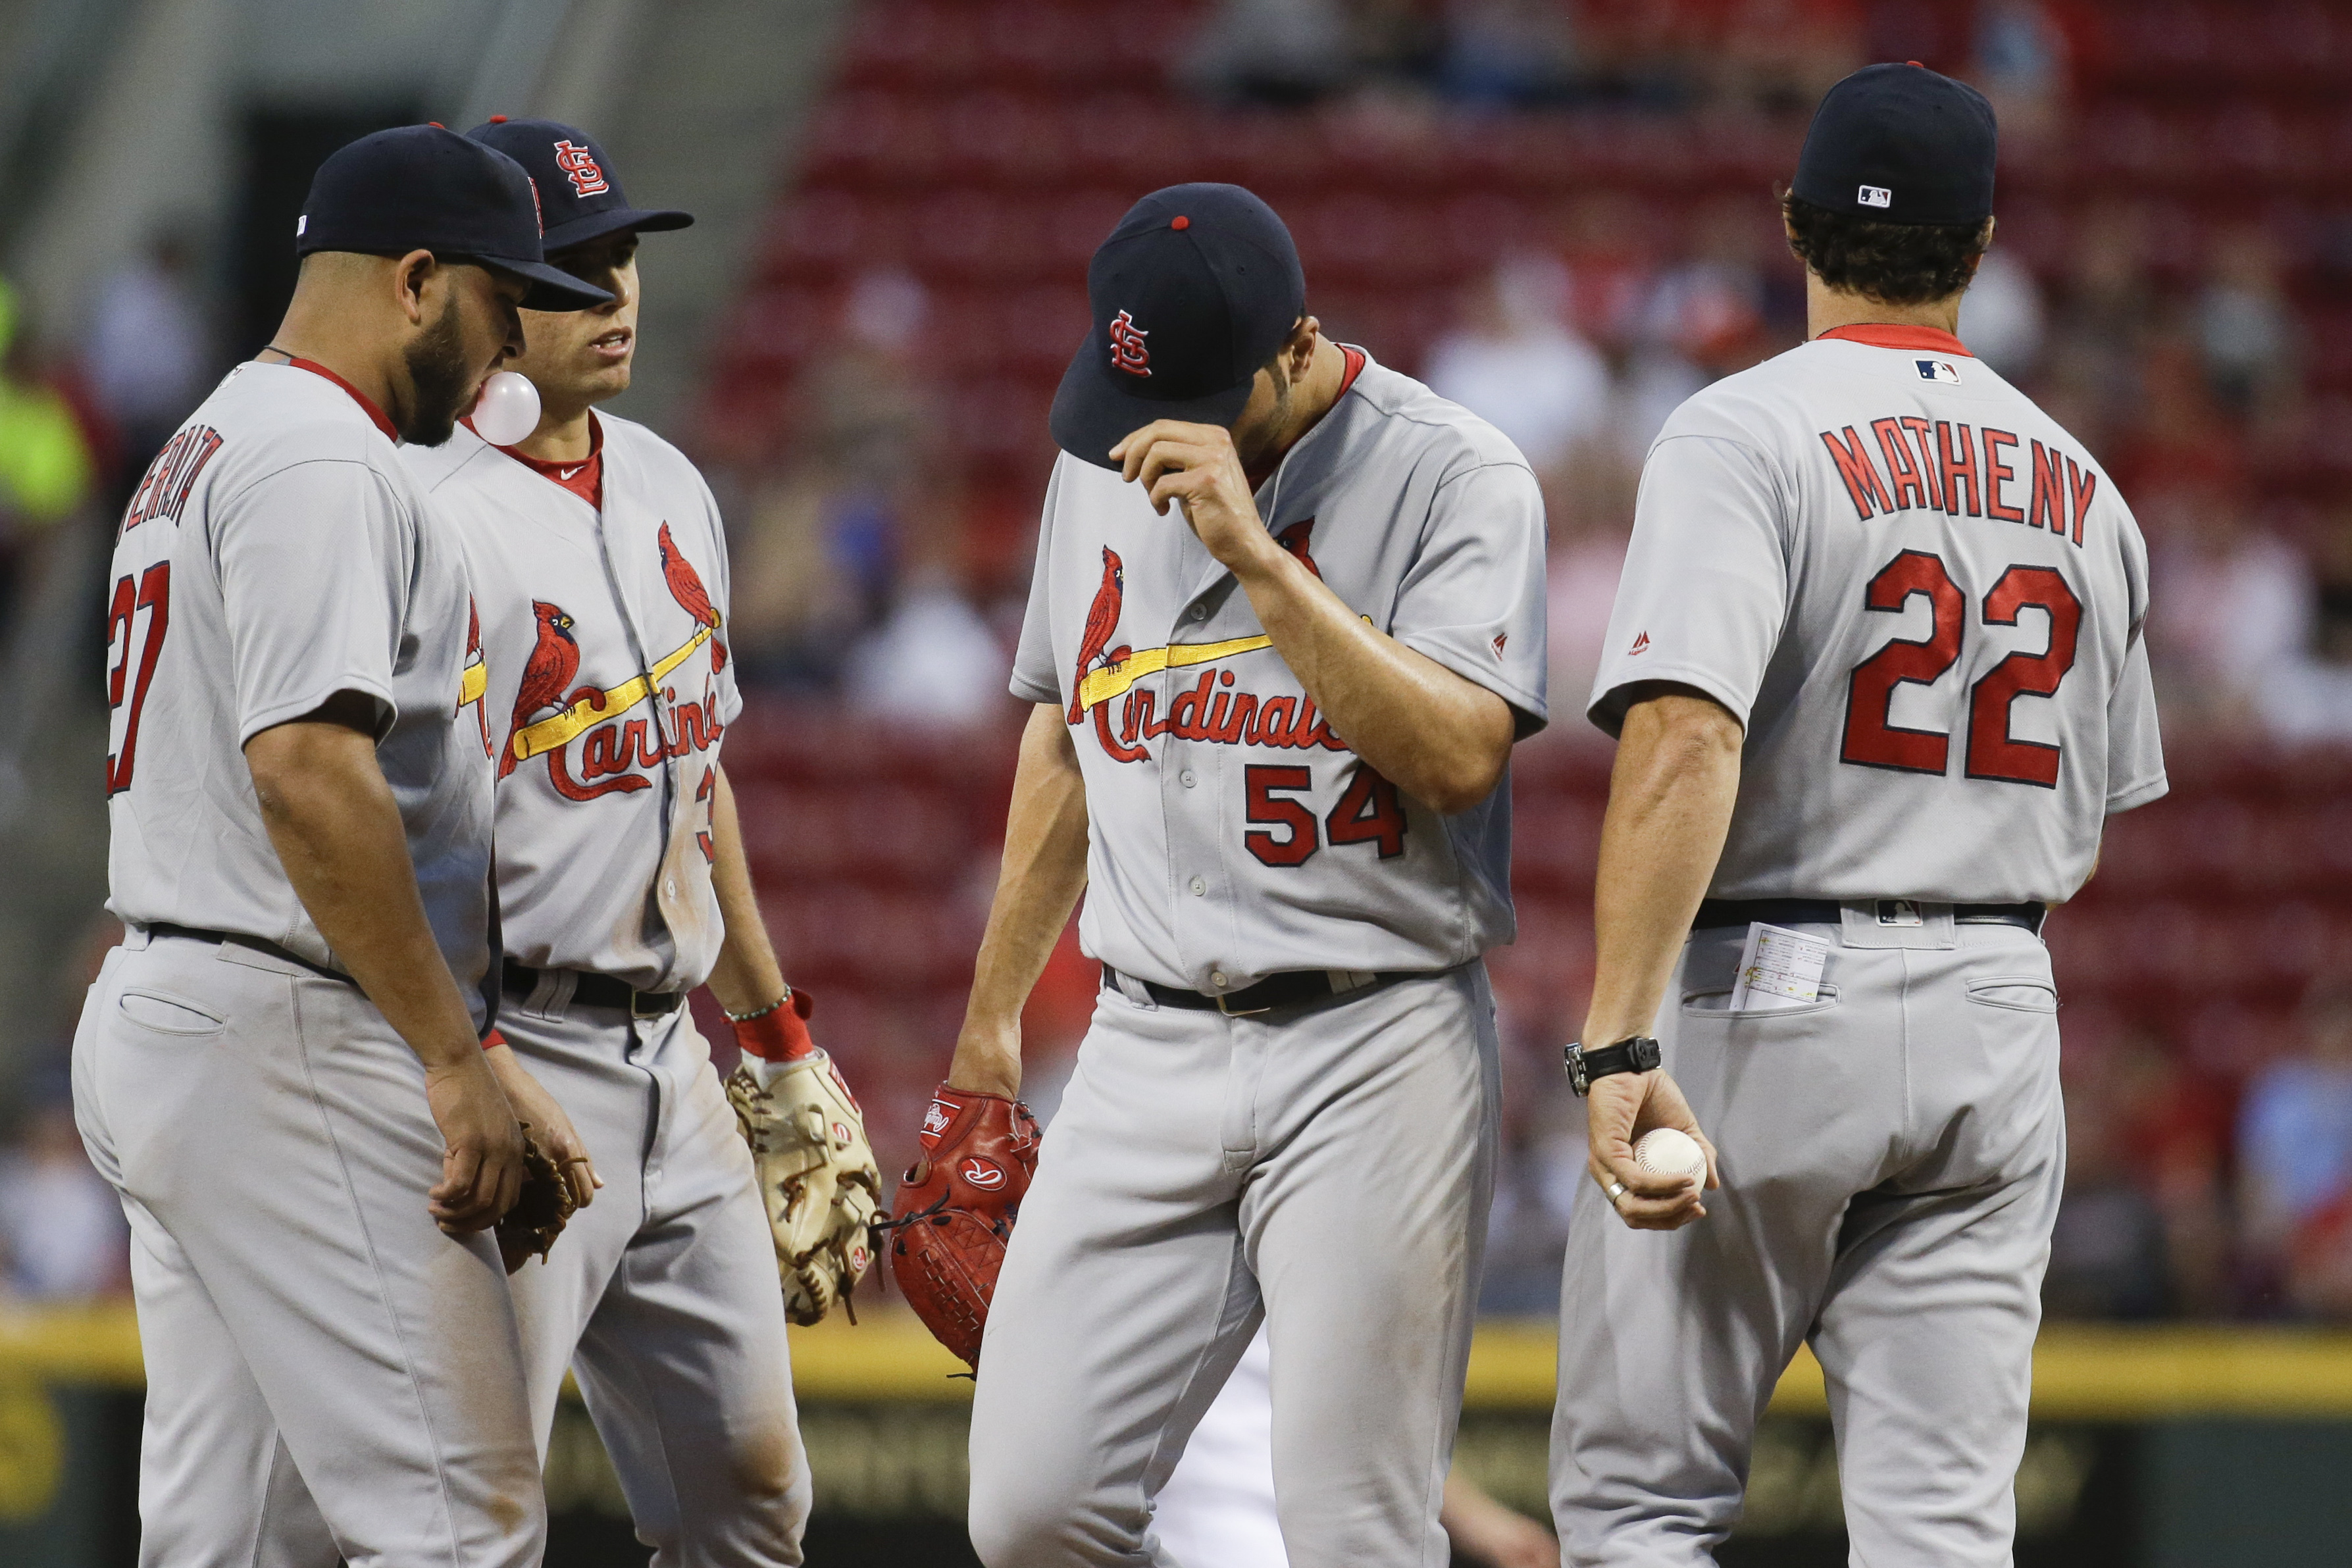 St. Louis Cardinals manager Mike Matheny (22) takes the ball from starting pitcher Jaime Garcia (54) as he is removed during the fifth inning of a baseball game, against the Cincinnati Reds on Wednesday, June 8, 2016, in Cincinnati. (AP Photo/John Minchil